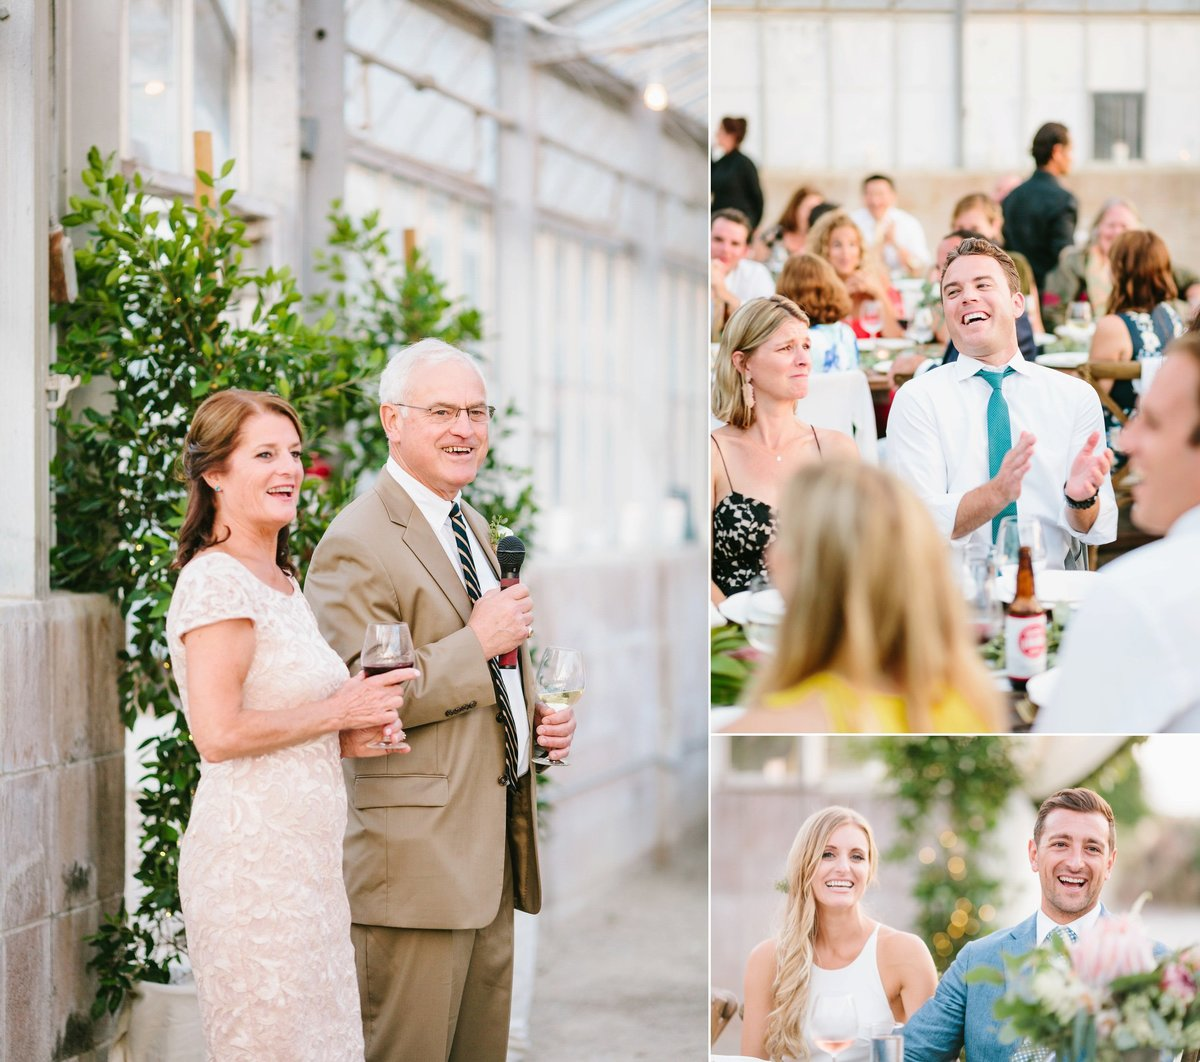 Best California Wedding Photographer-Jodee Debes Photography-37